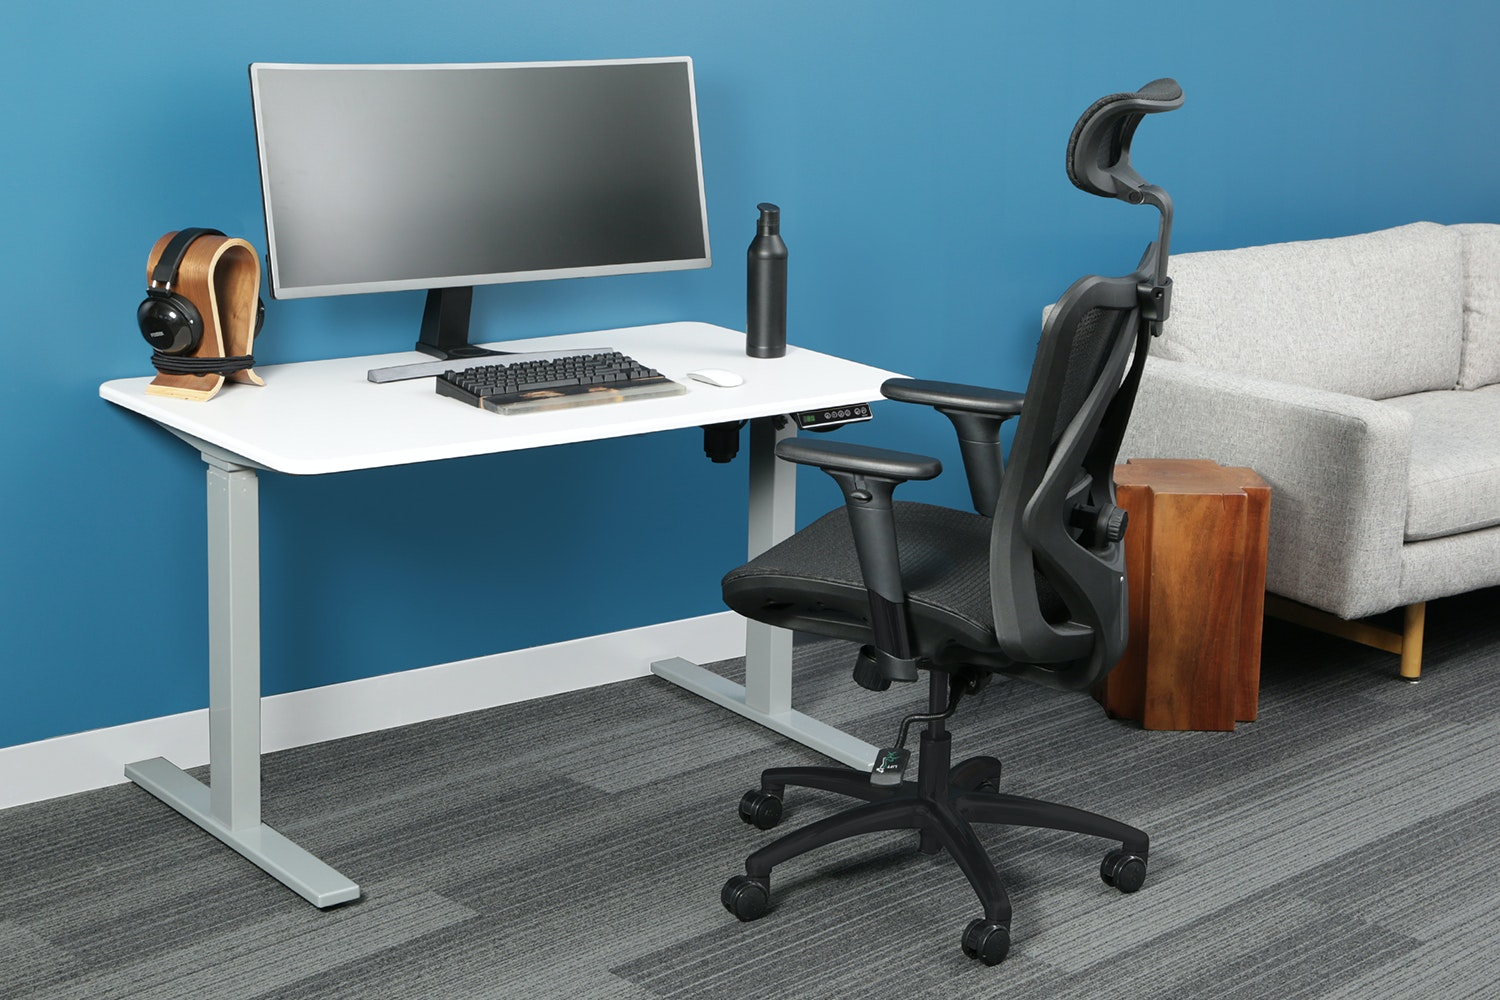 Massdrop Lift Sit To Stand Desk Price Amp Reviews Massdrop